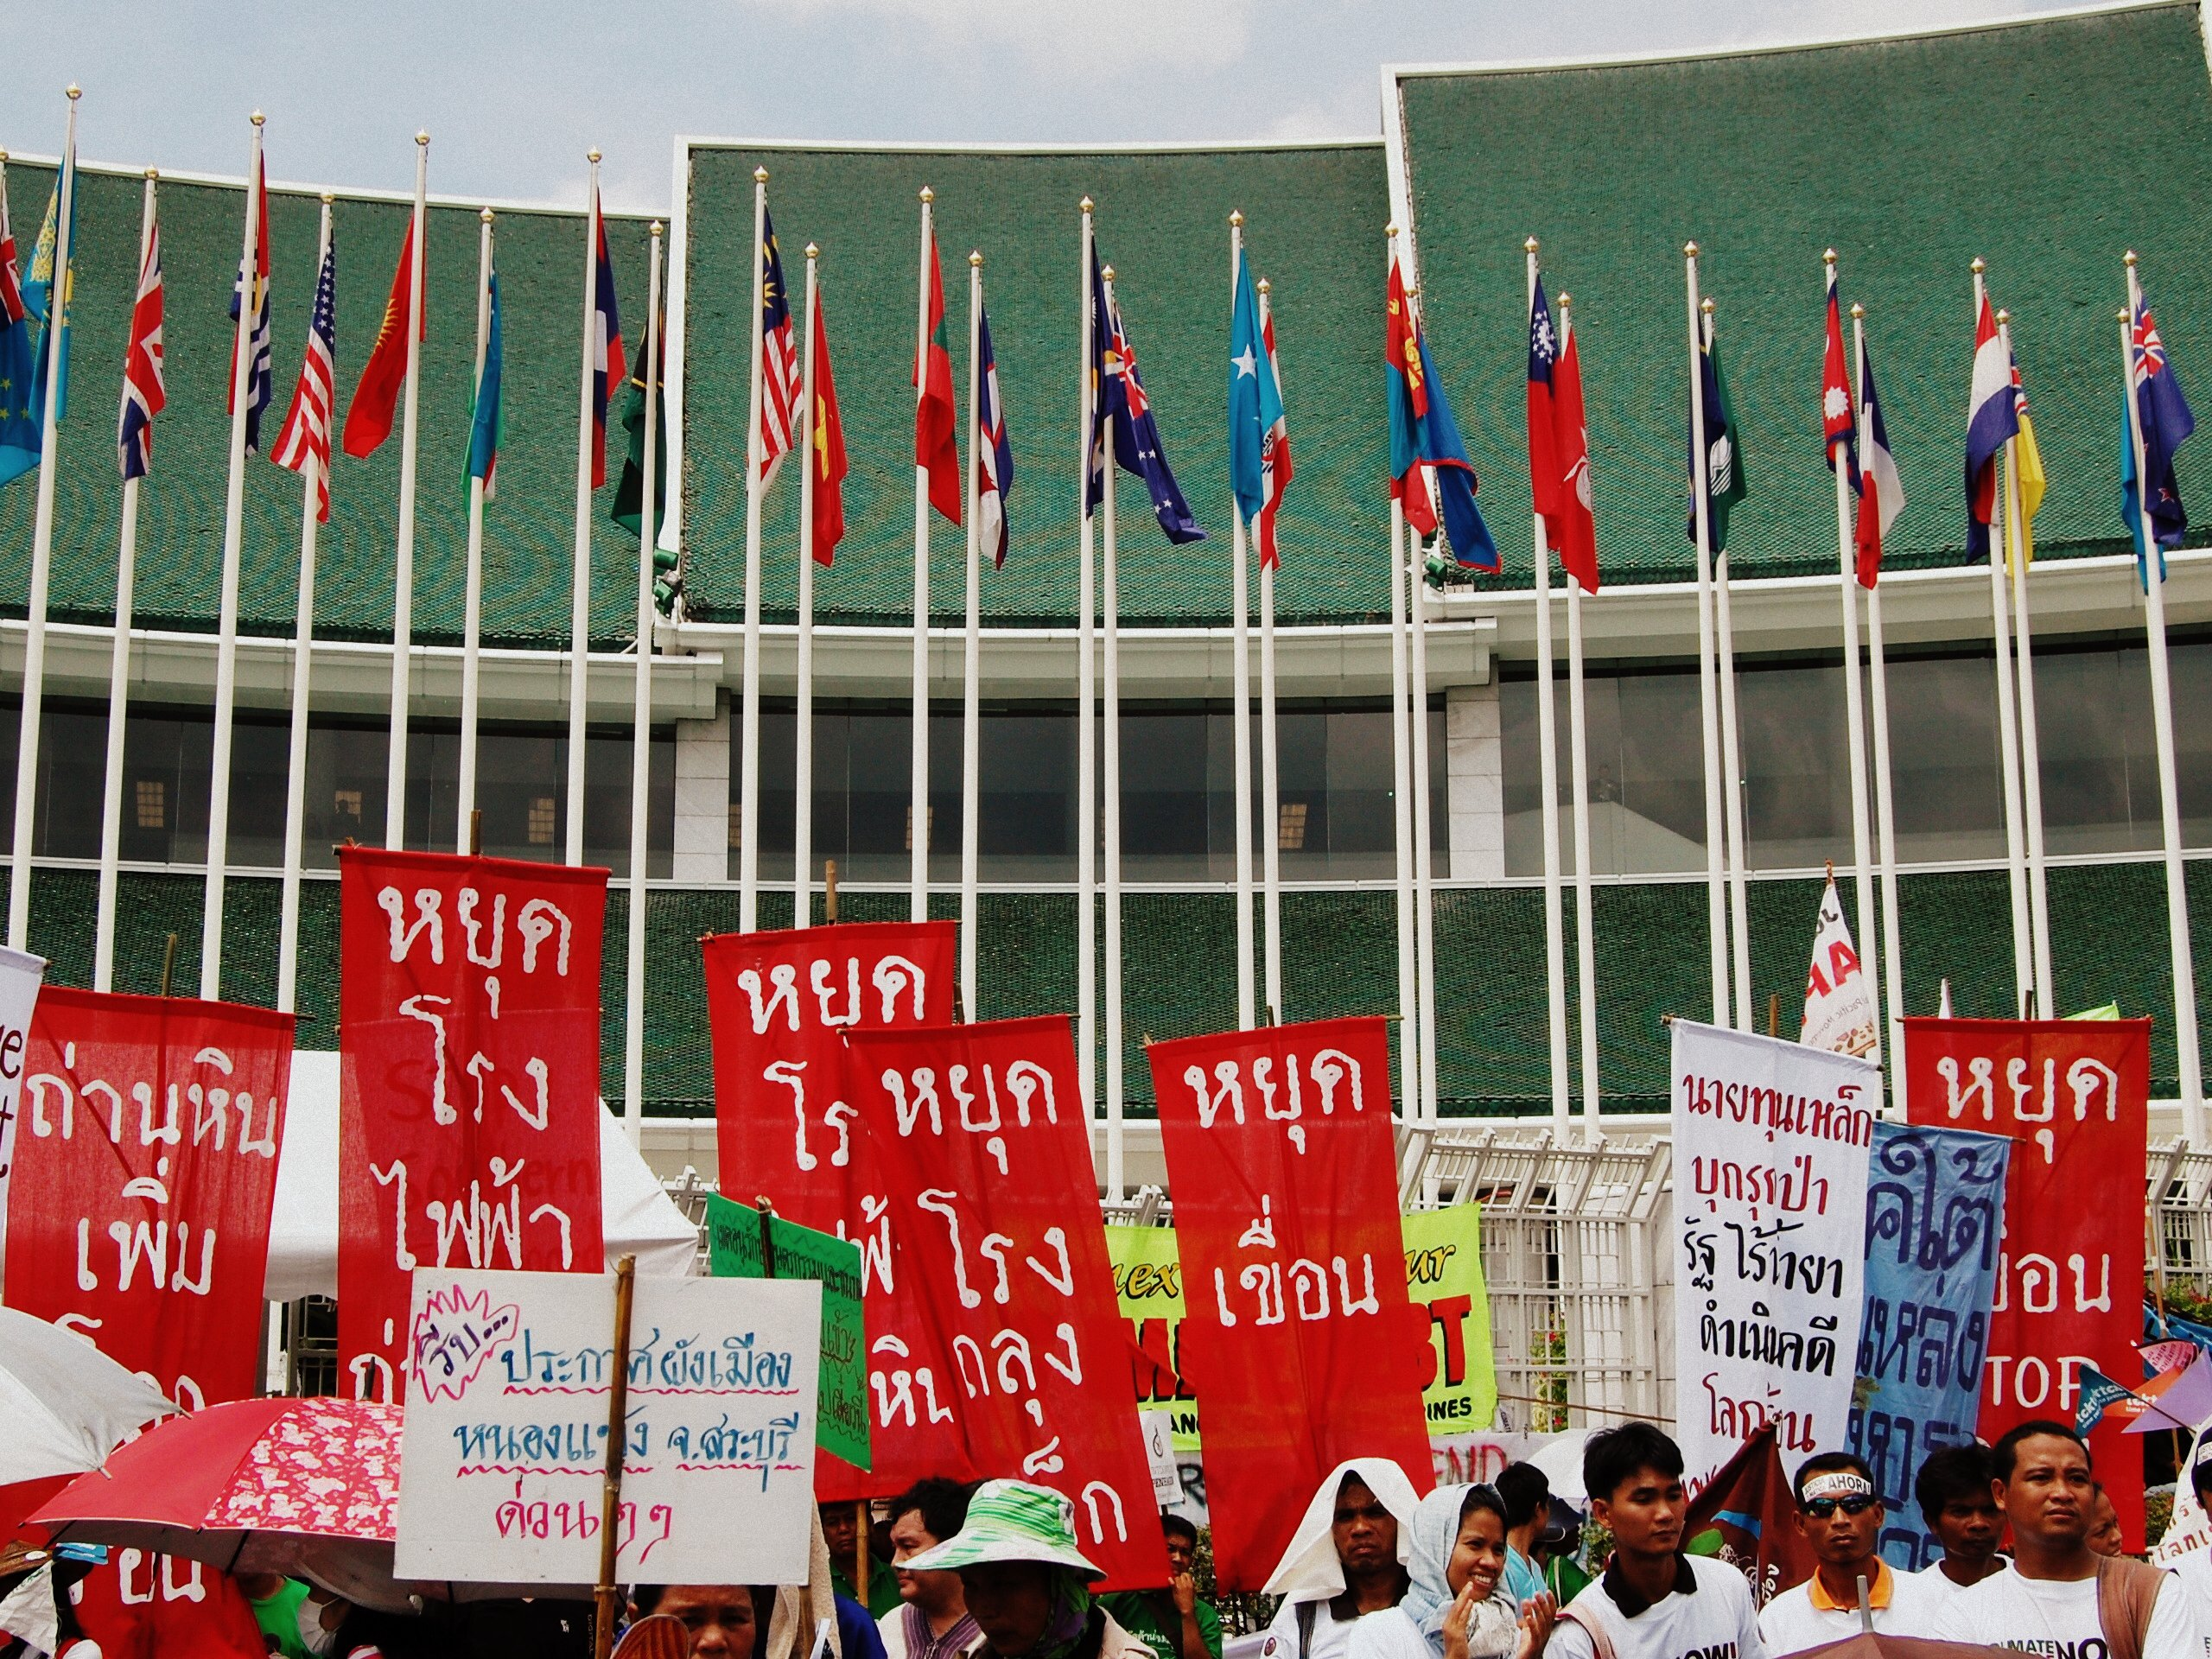 Protesters_at_2009_Bangkok_Talks_on_Climate_Change.jpg